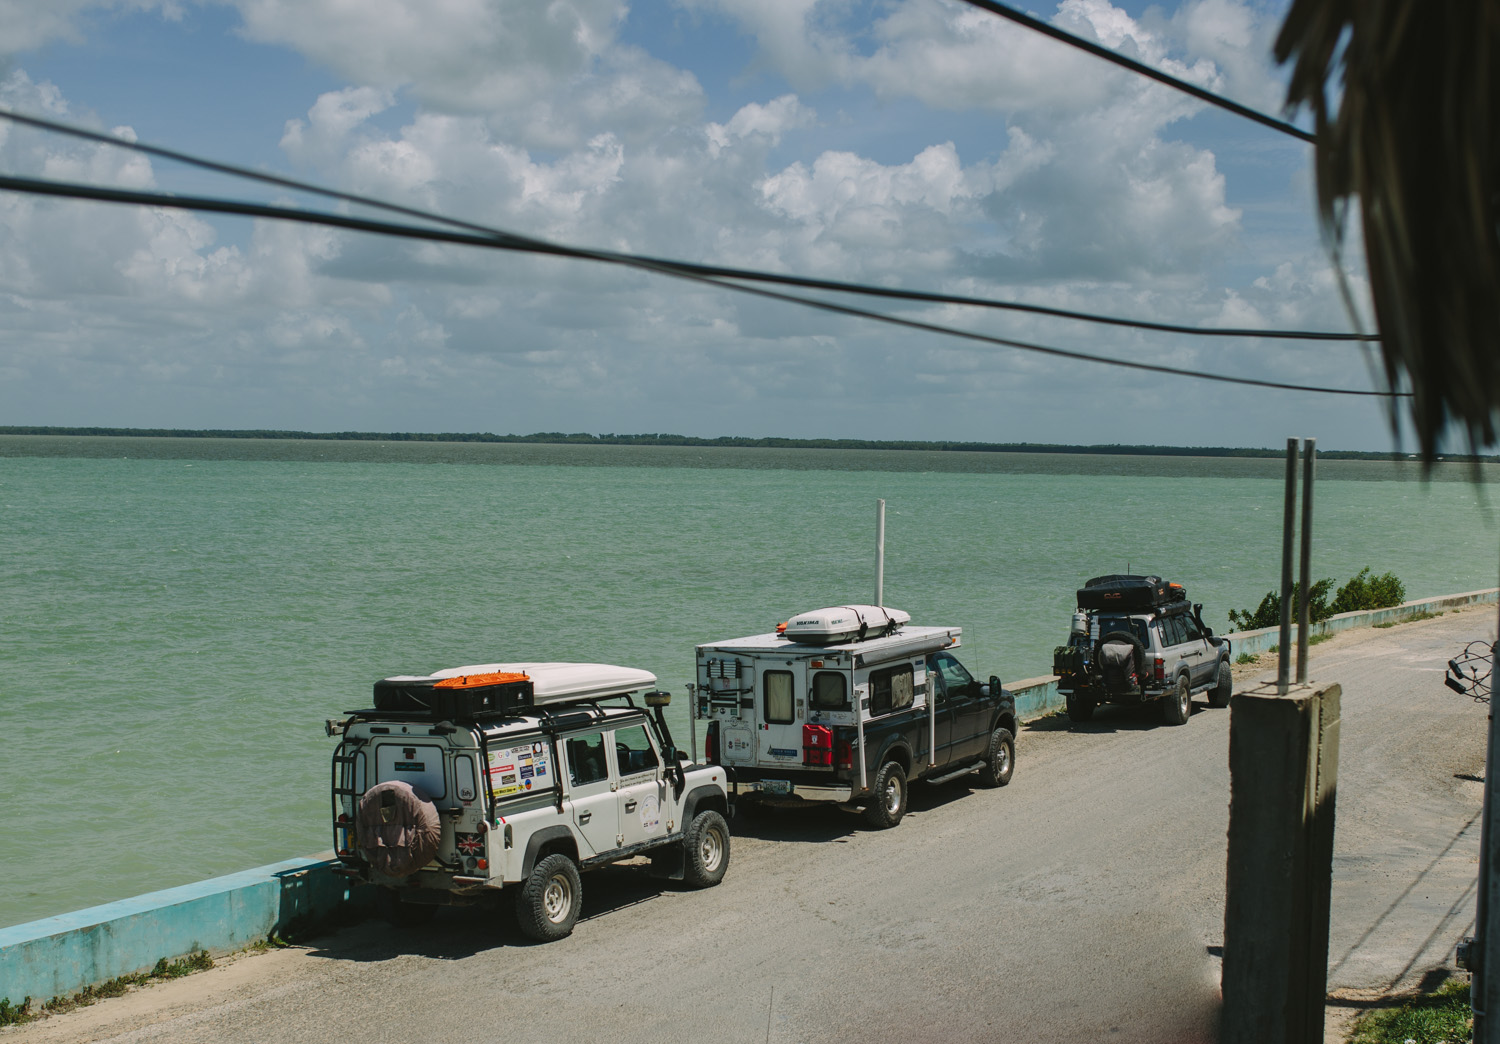 Parked on the street in Corozal